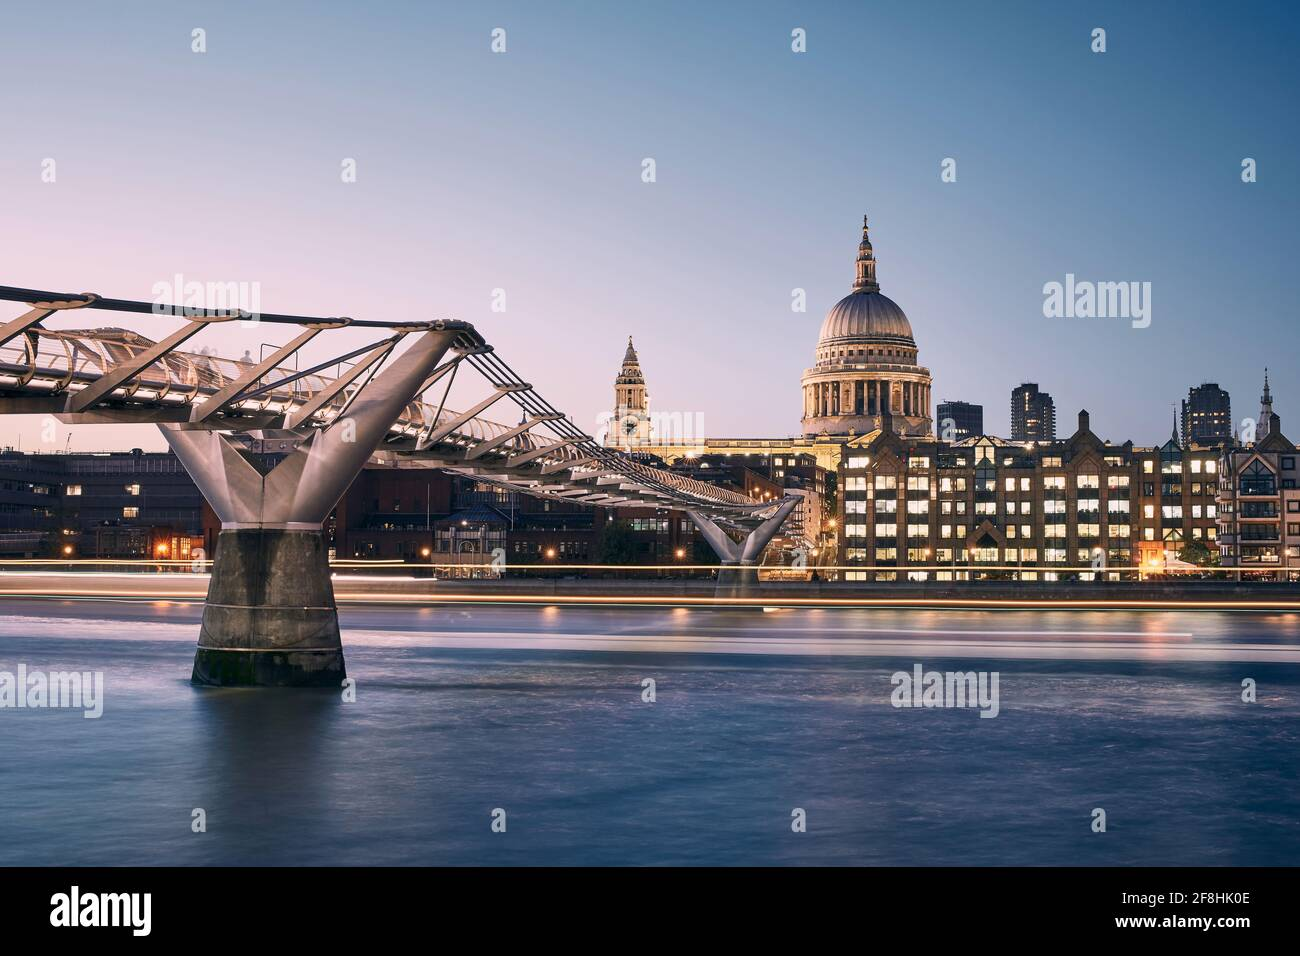 London cityscape at dusk. City waterfront with Millennium Footbridge against St. Pauls Cathedral. United Kingdom. Stock Photo